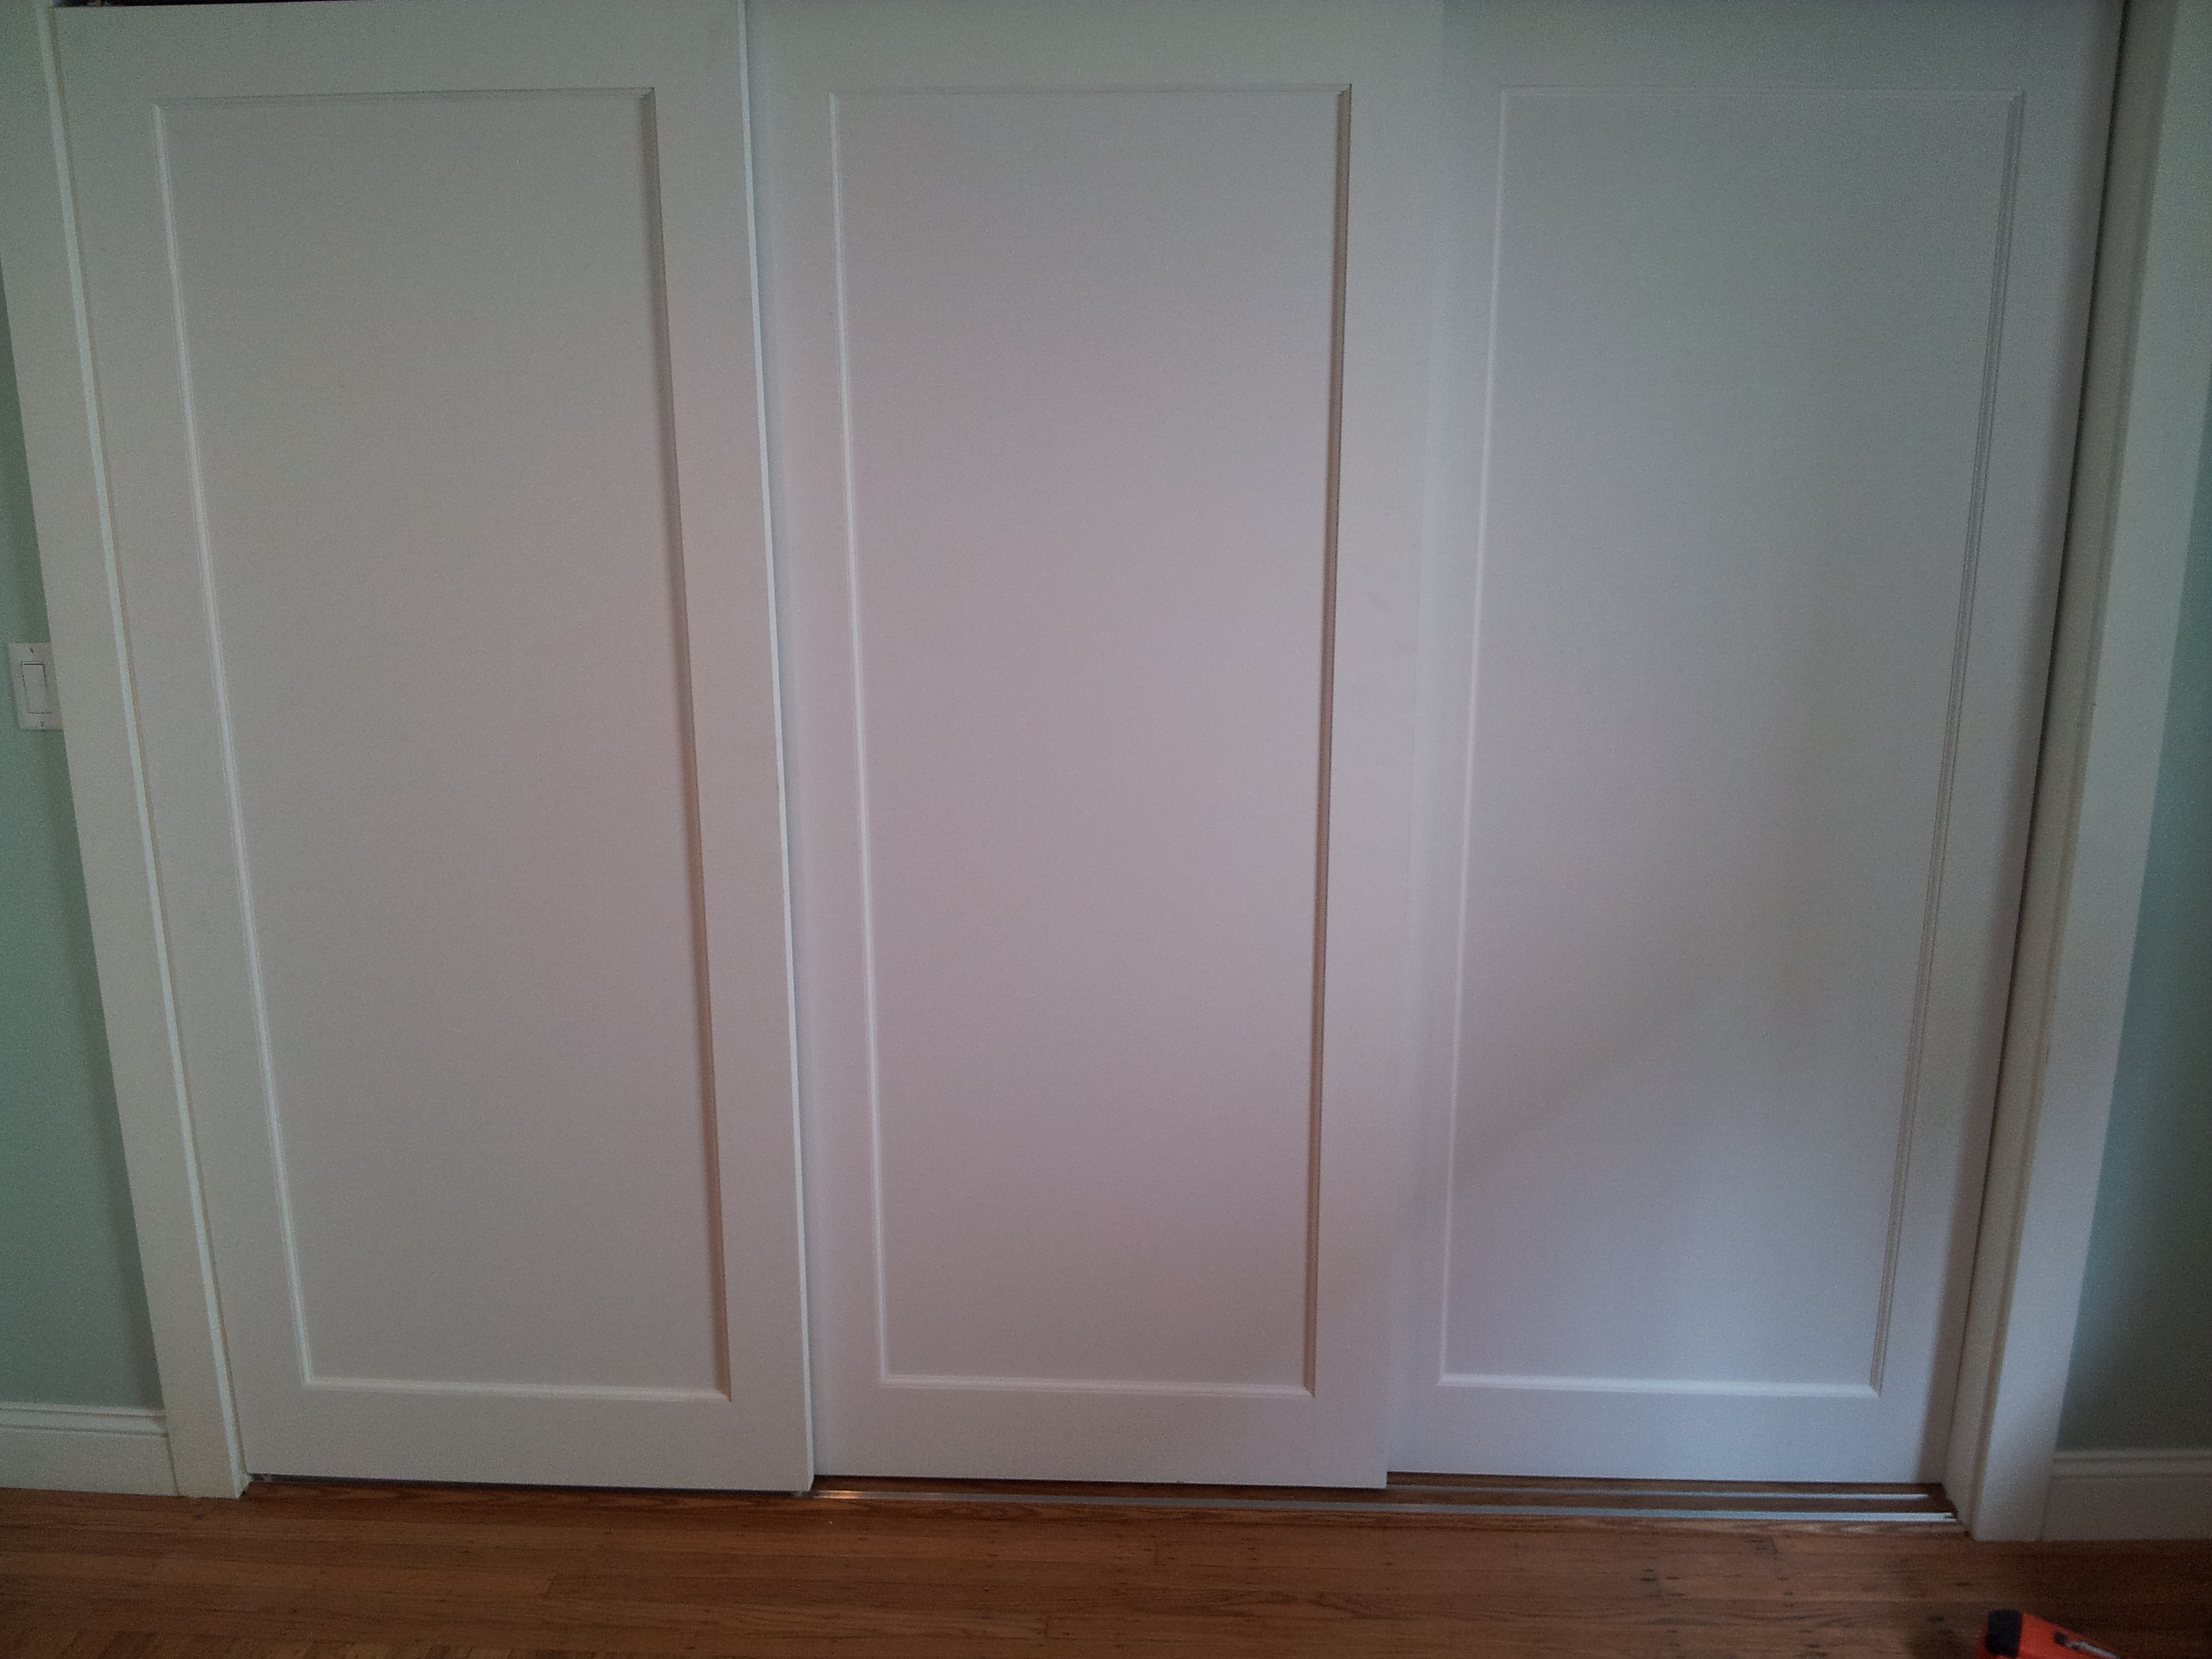 3 panel sliding closet doors - Installed 3 Panel Doors On Custom Sliding Track For Extra Wide Closet